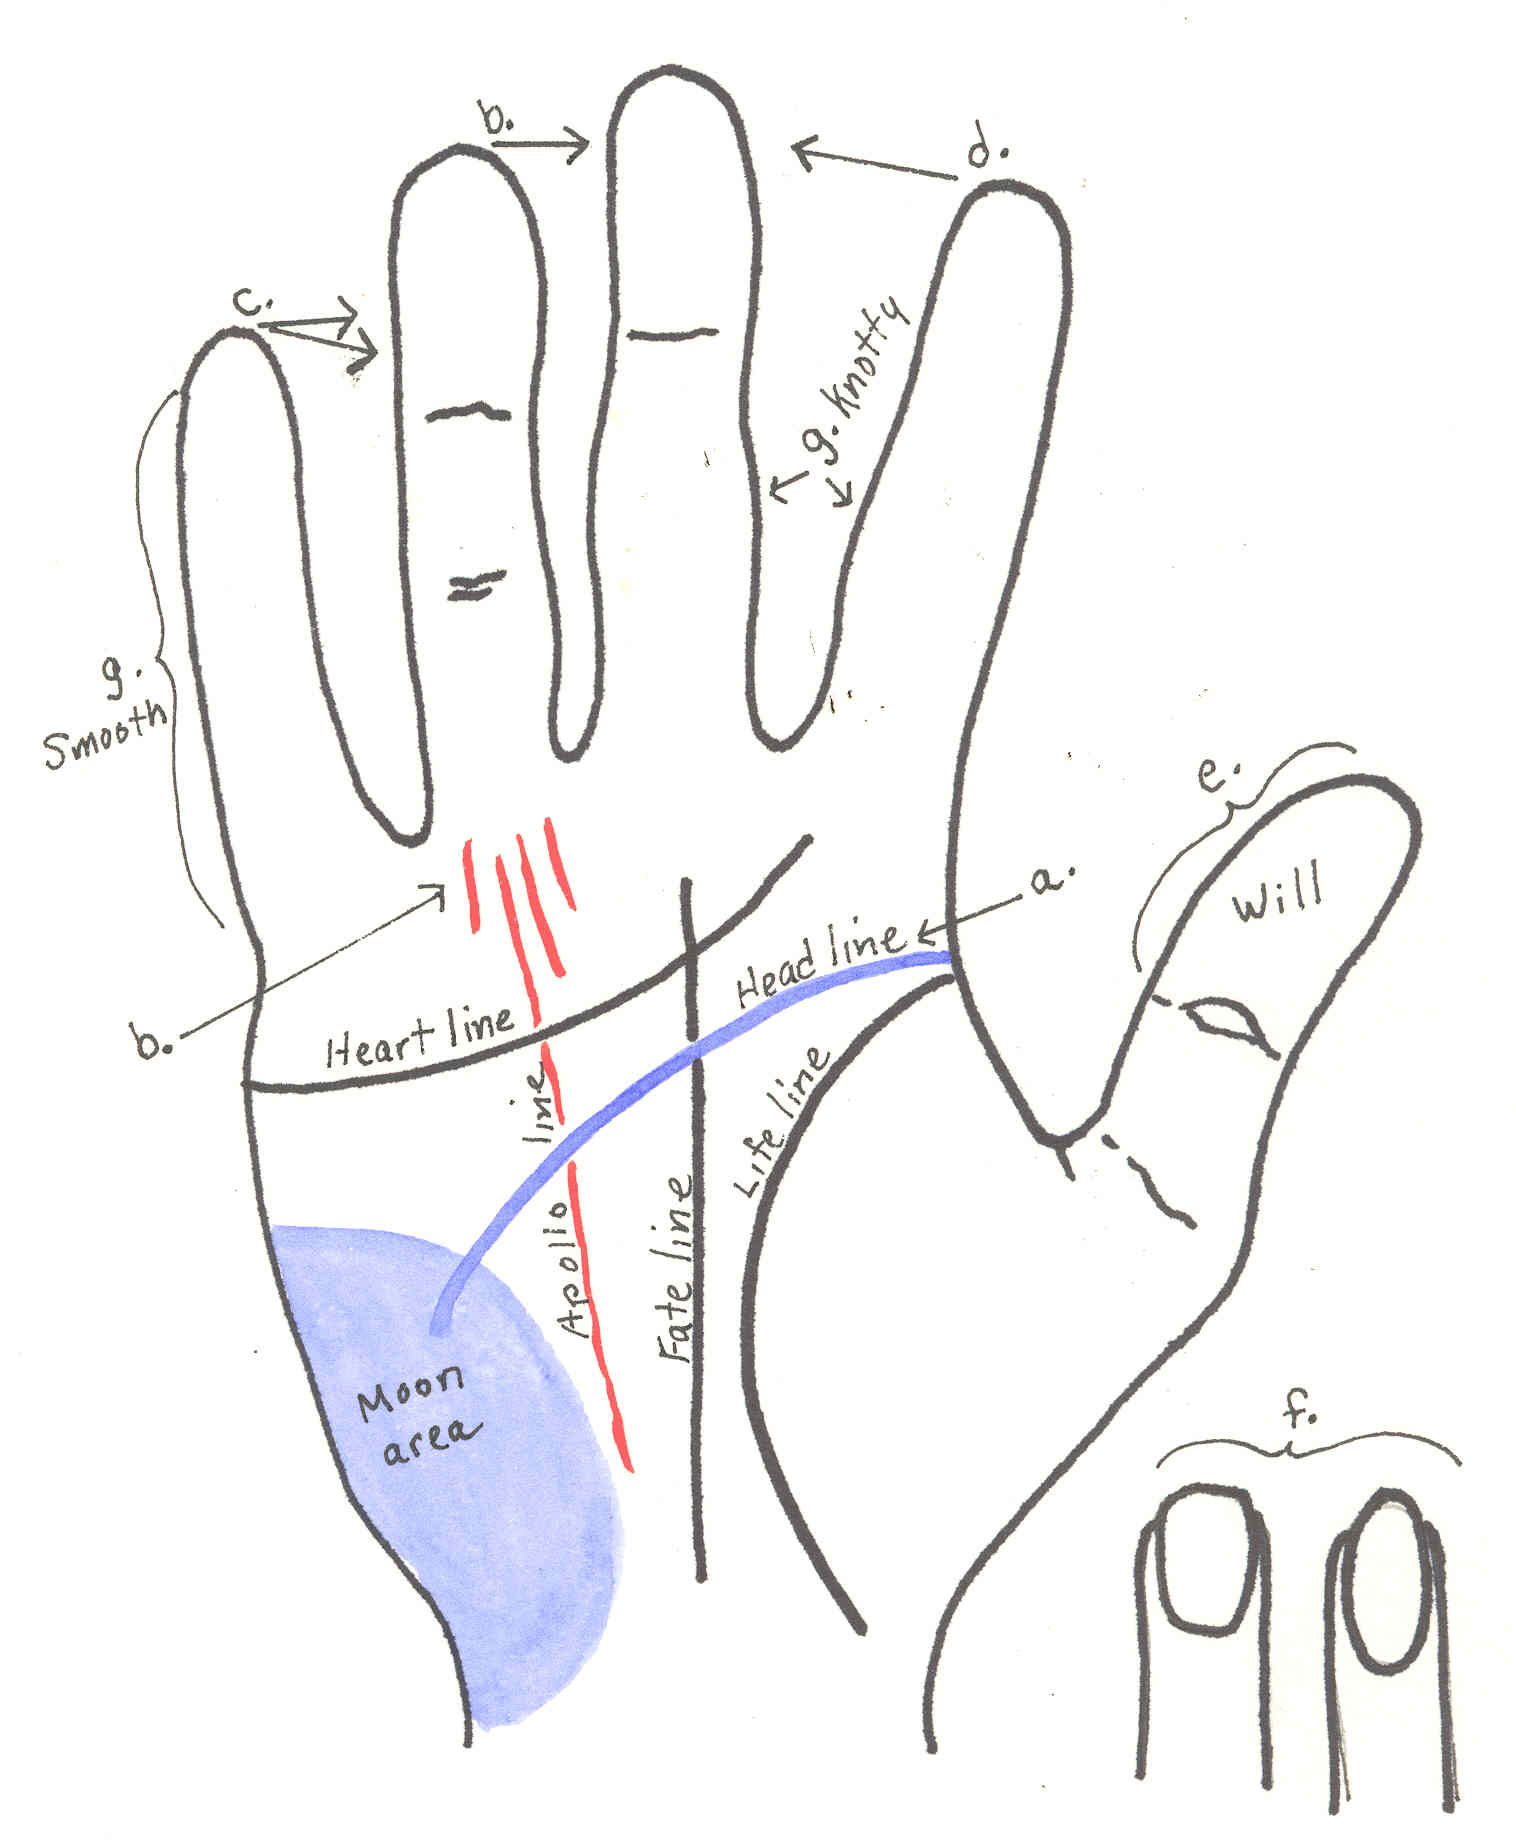 palmistry diagram marriage line goldwing 1500 wiring palm reading pendulum elsavadorla